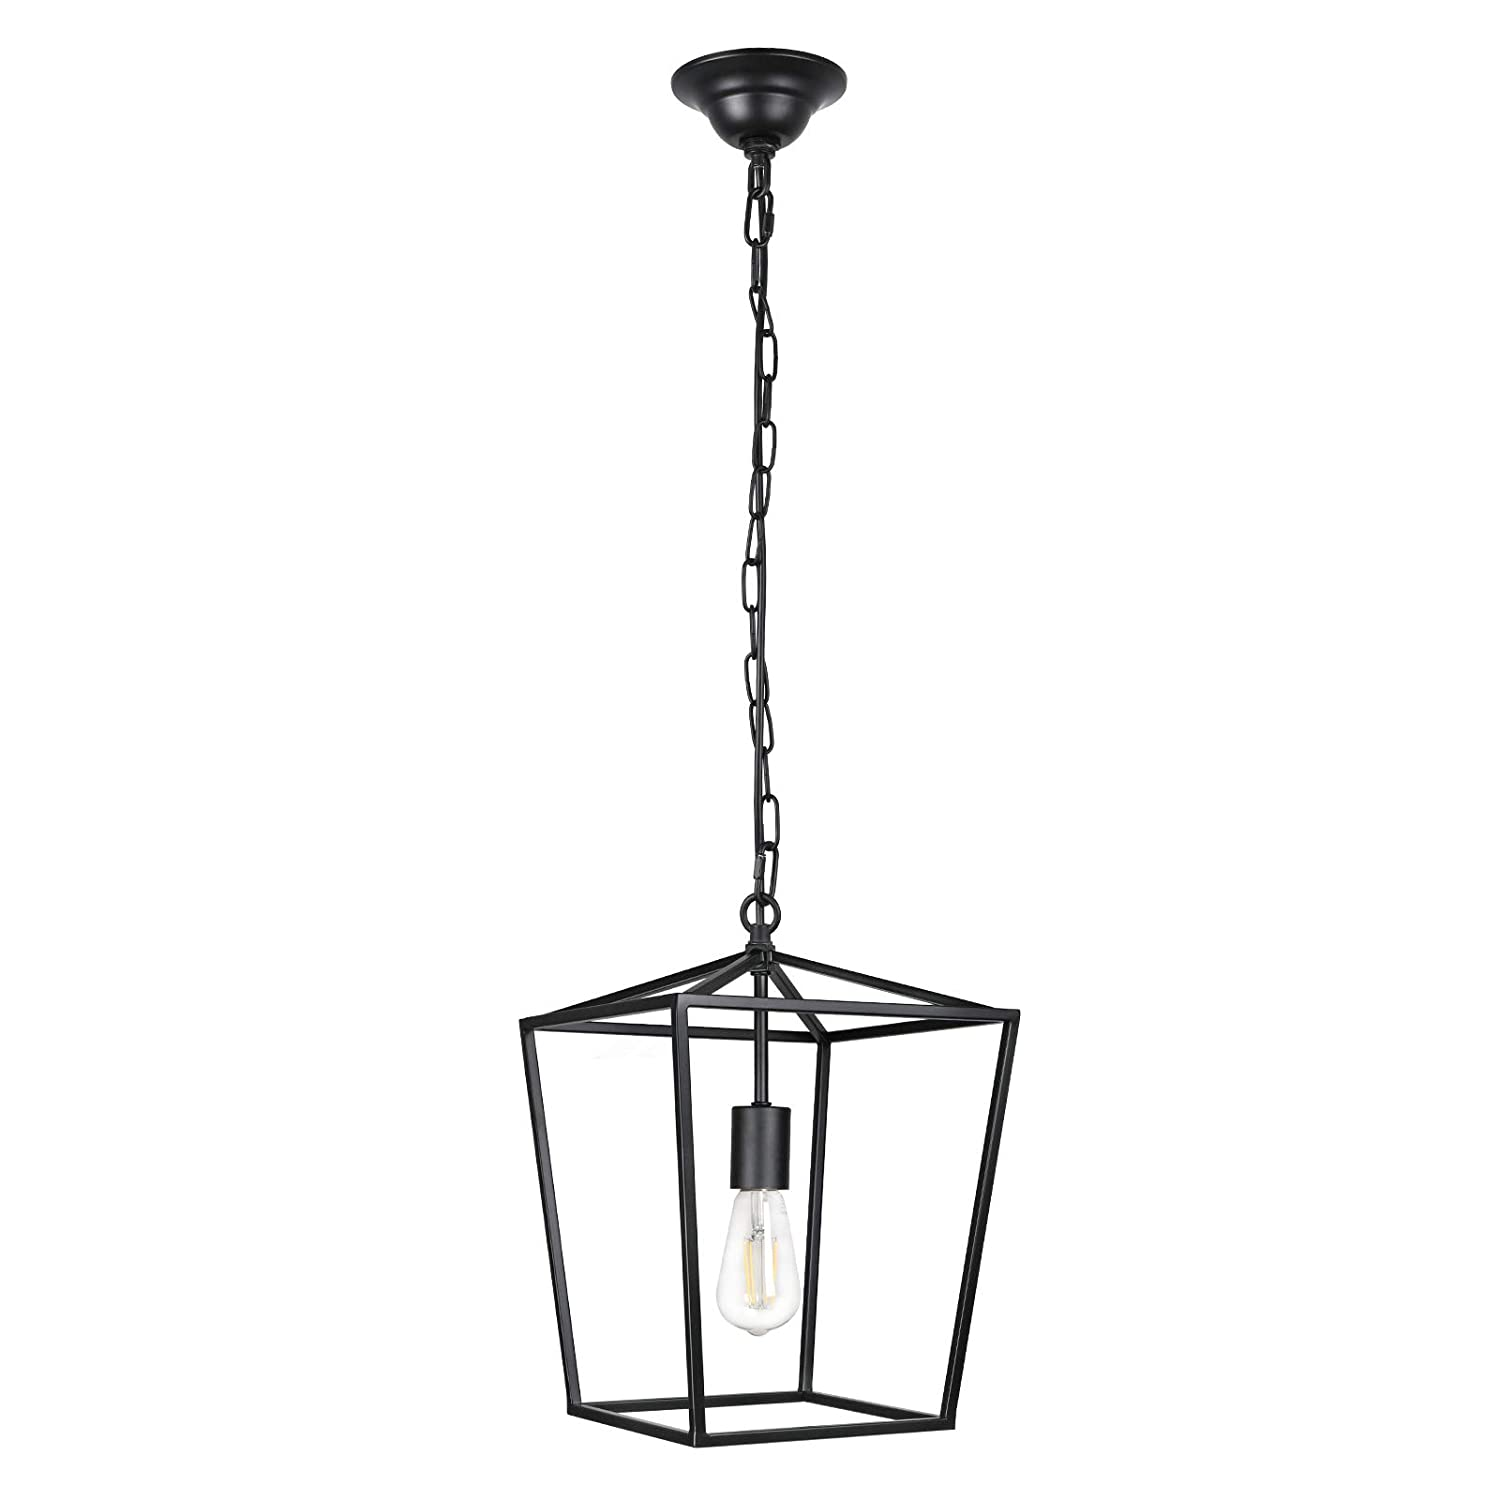 Paragon Home Pendant Light Hanging Lantern Lighting Fixture for Kitchen and Dining Room, Industrial Retro Iron Chandelier Fixture,E26 Base, Black (Bulbs Not Included)